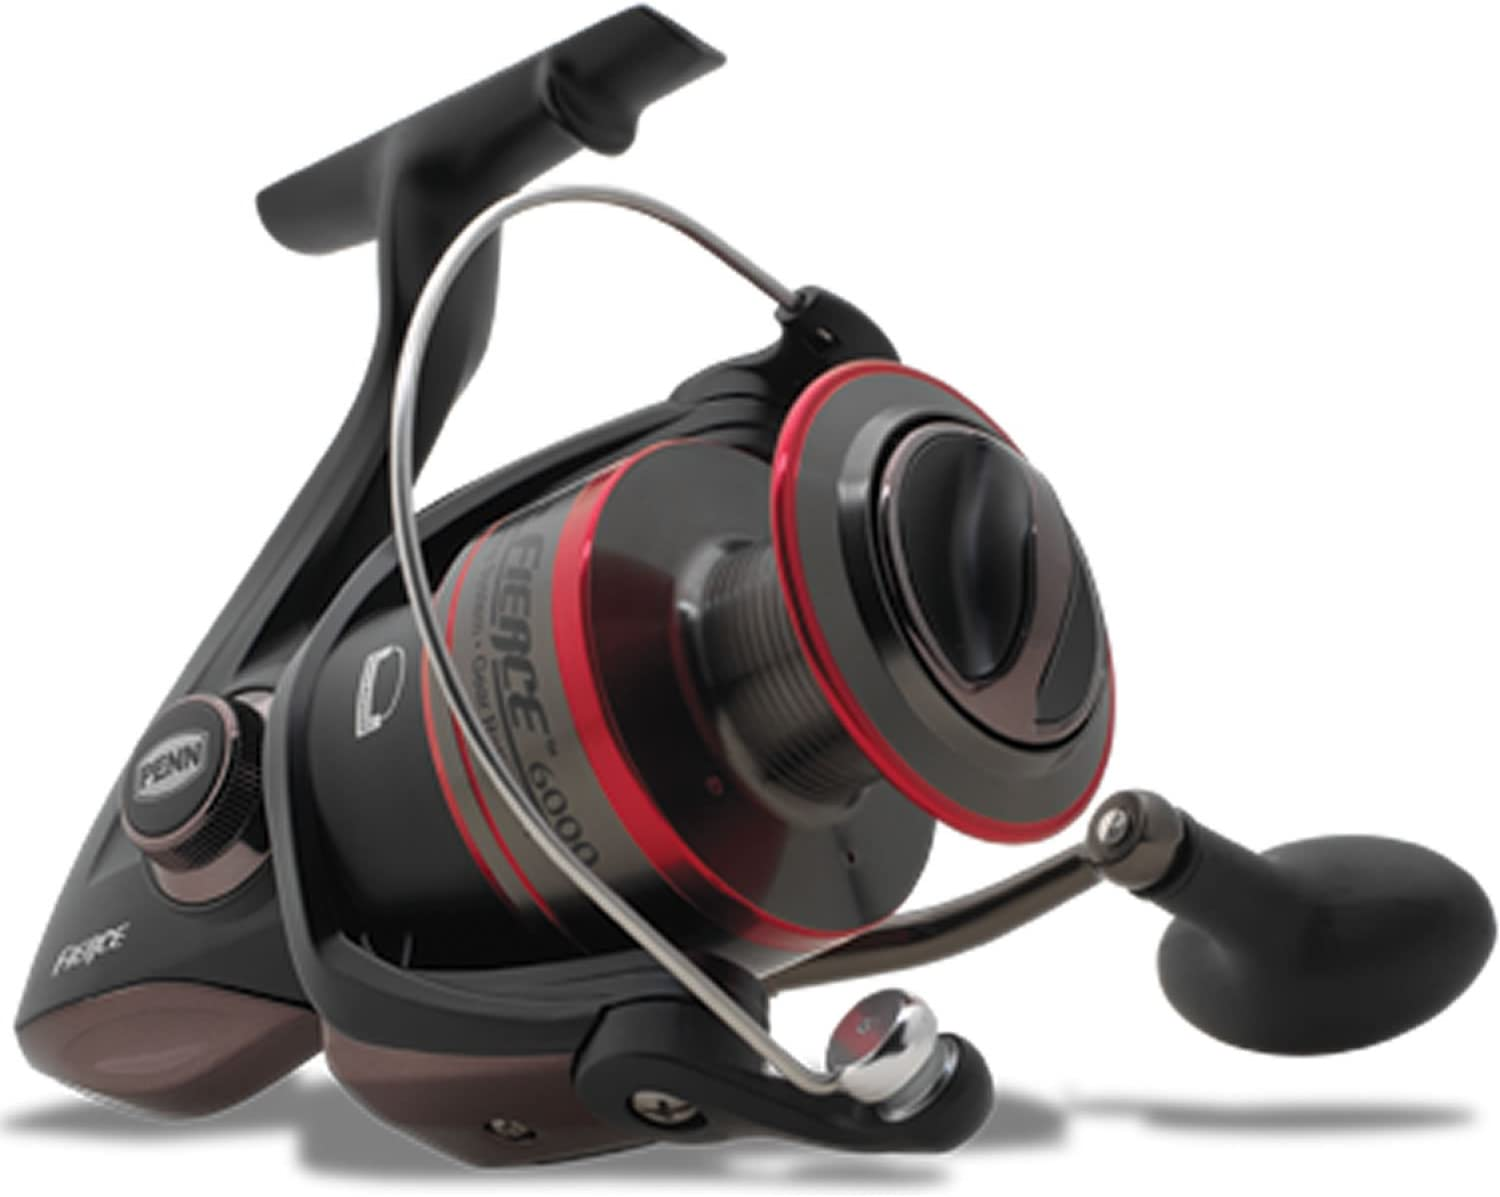 Penn Fierce 4 1 Bearing 5.3 1 25 350 Line Capacity Spinning Reel